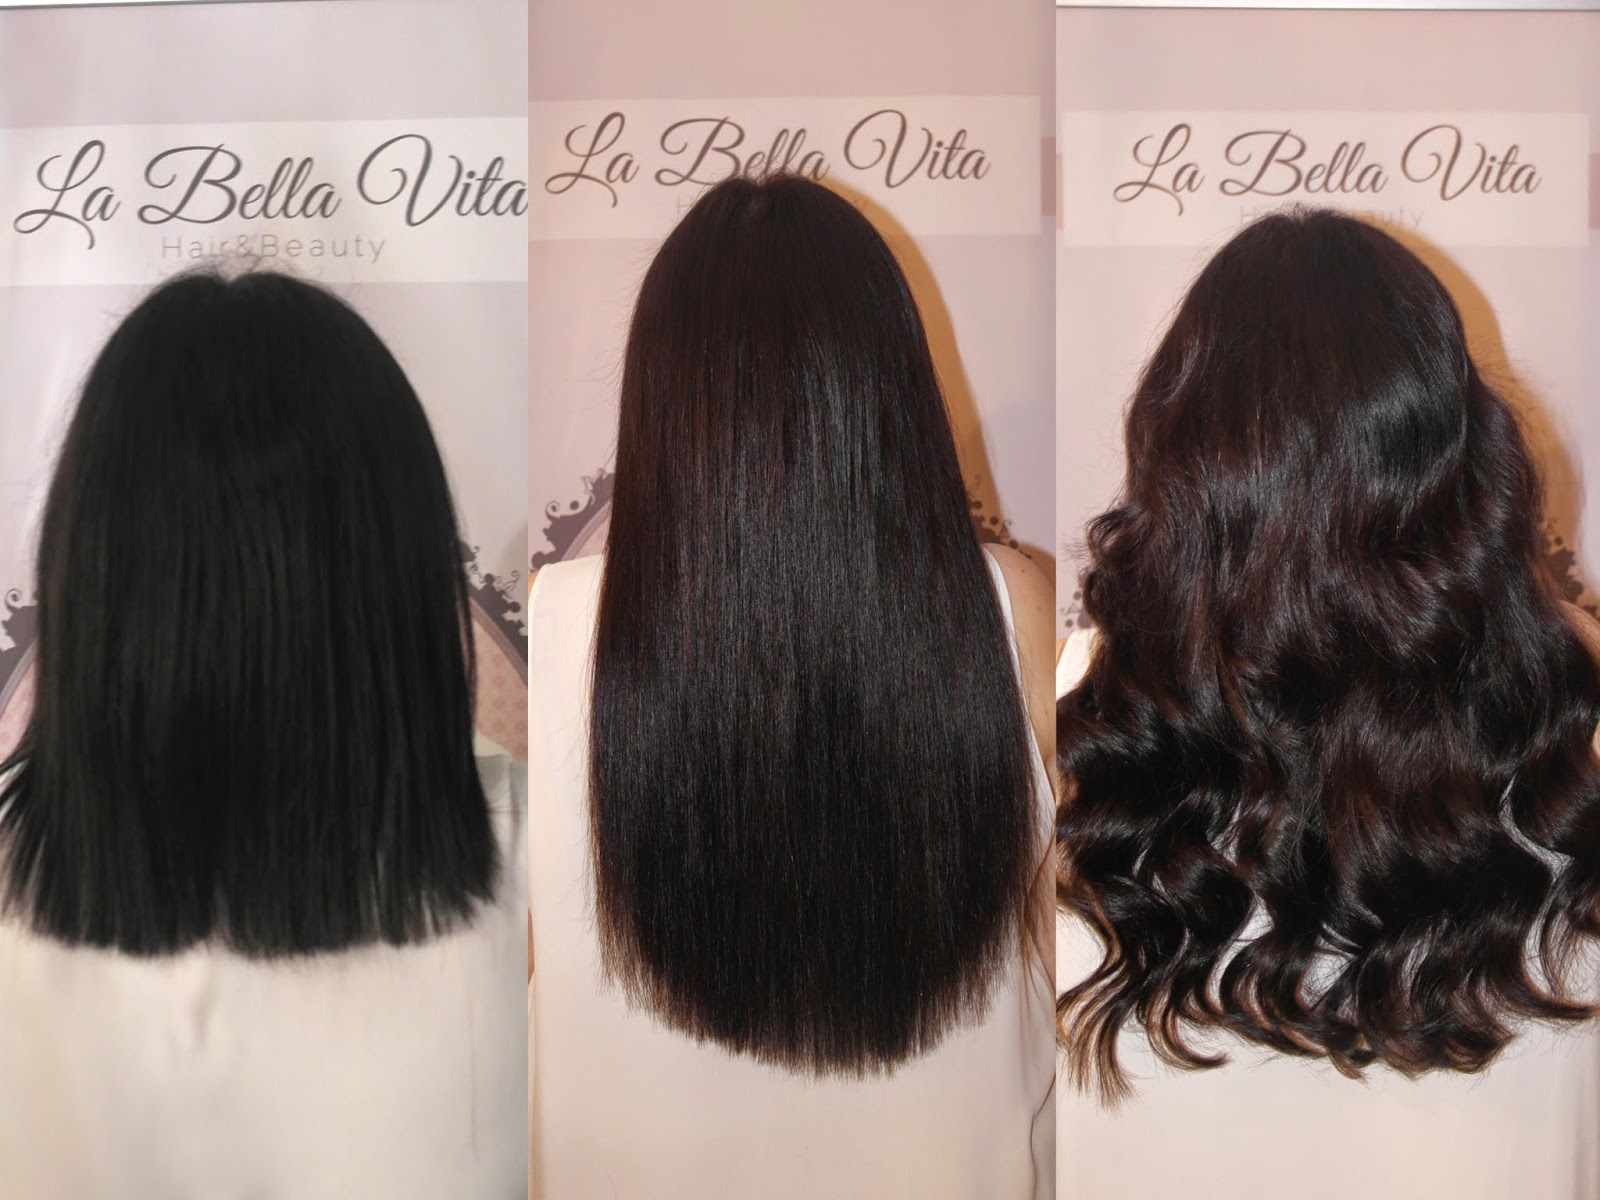 Getting my dream hair at la bella vita that belfast girl getting my dream hair at la bella vita pmusecretfo Images